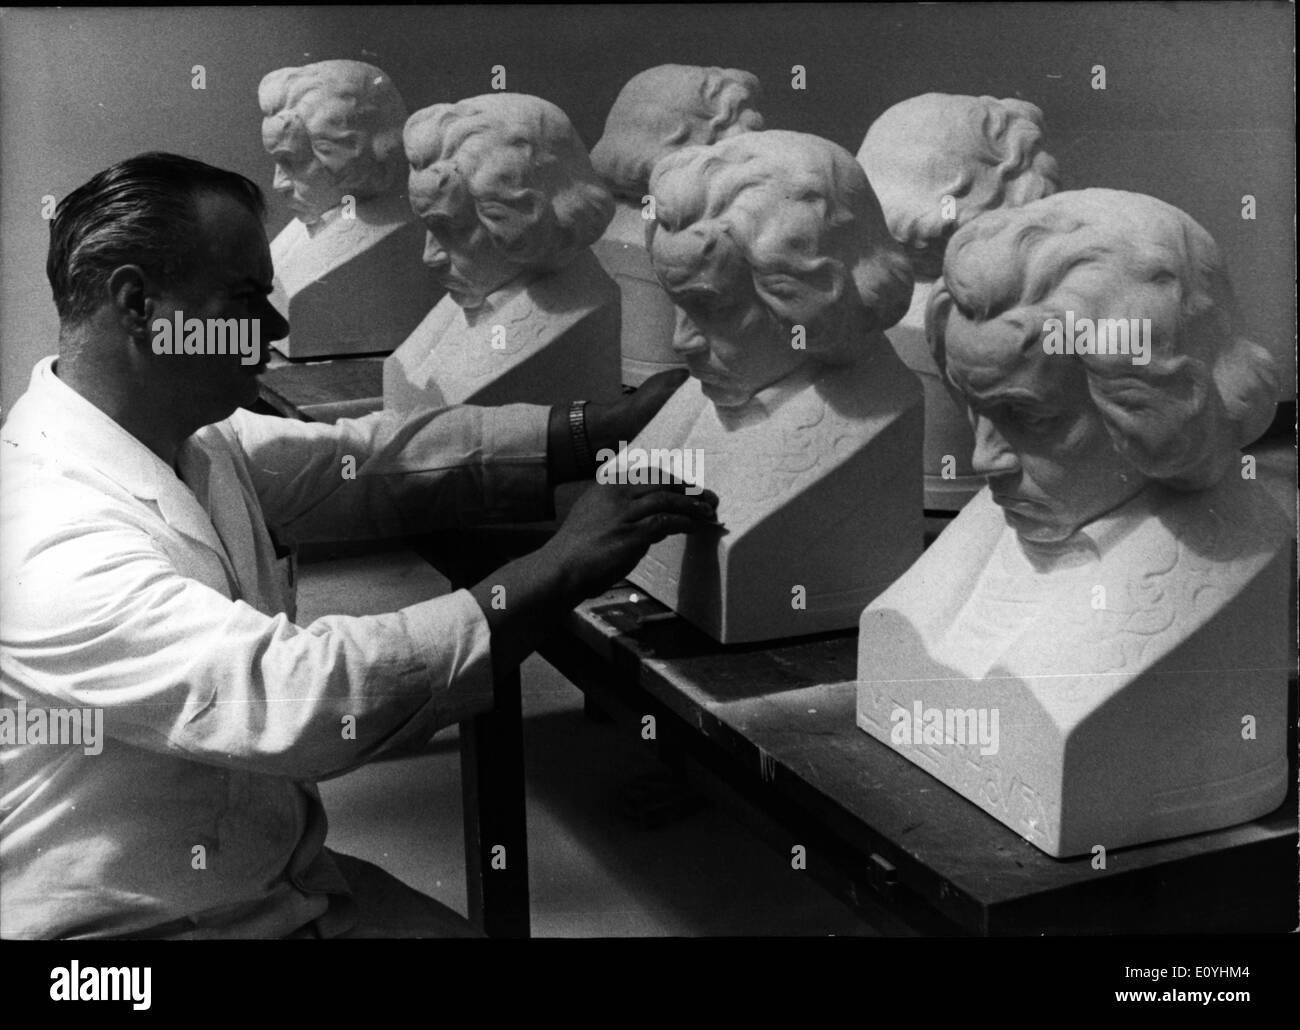 Jun. 06, 1970 - They go all over the world.: these Beethoven busts of which, as a whole, 145 items have been produced in the workshop of the District Museum of Bonn. Werner Maslaukowsky ( Maslaukowsky - Picture ), head of this workshop, who has absolved an apprenticeship as a chemical engineer, at first made a from of India rubber, according to a model by the Cologne sculptor J.B. Sohreiber, which was then cast out with plaster. Subsequently each bust got a manual finish. The works of art, made on the occasion of Ludwig van Beethoven's 200th anniversary on Dec - Stock Image